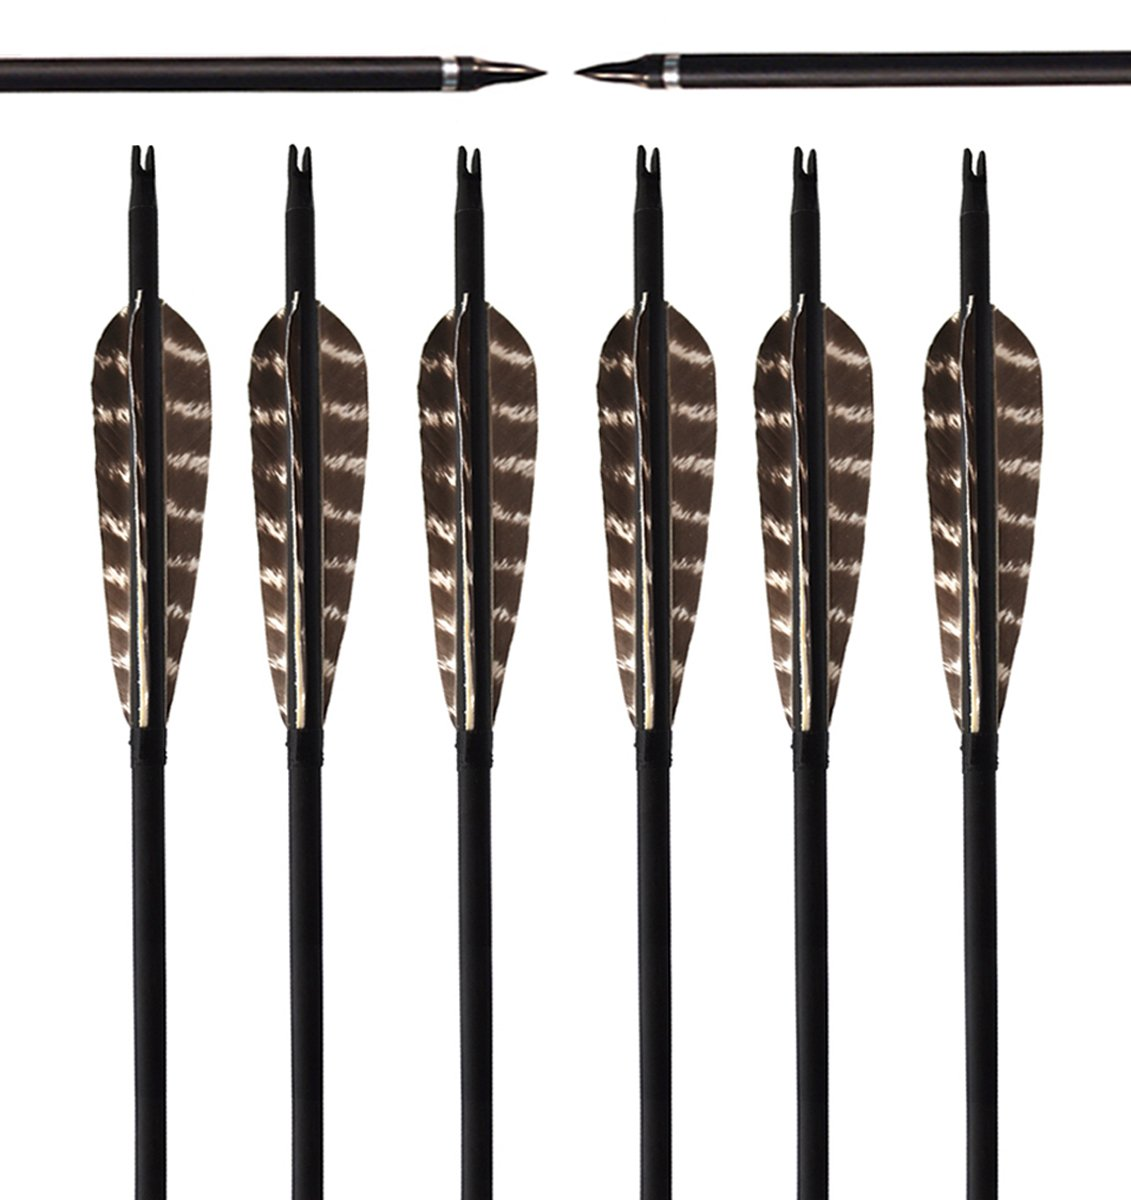 ARCHERY SHARLY [Pack of 6] 31Inch Carbon Targeting Practice Arrows Turkey Feather Fletching Arrows with Removanle Tips for Recurve Traditional Long Bow